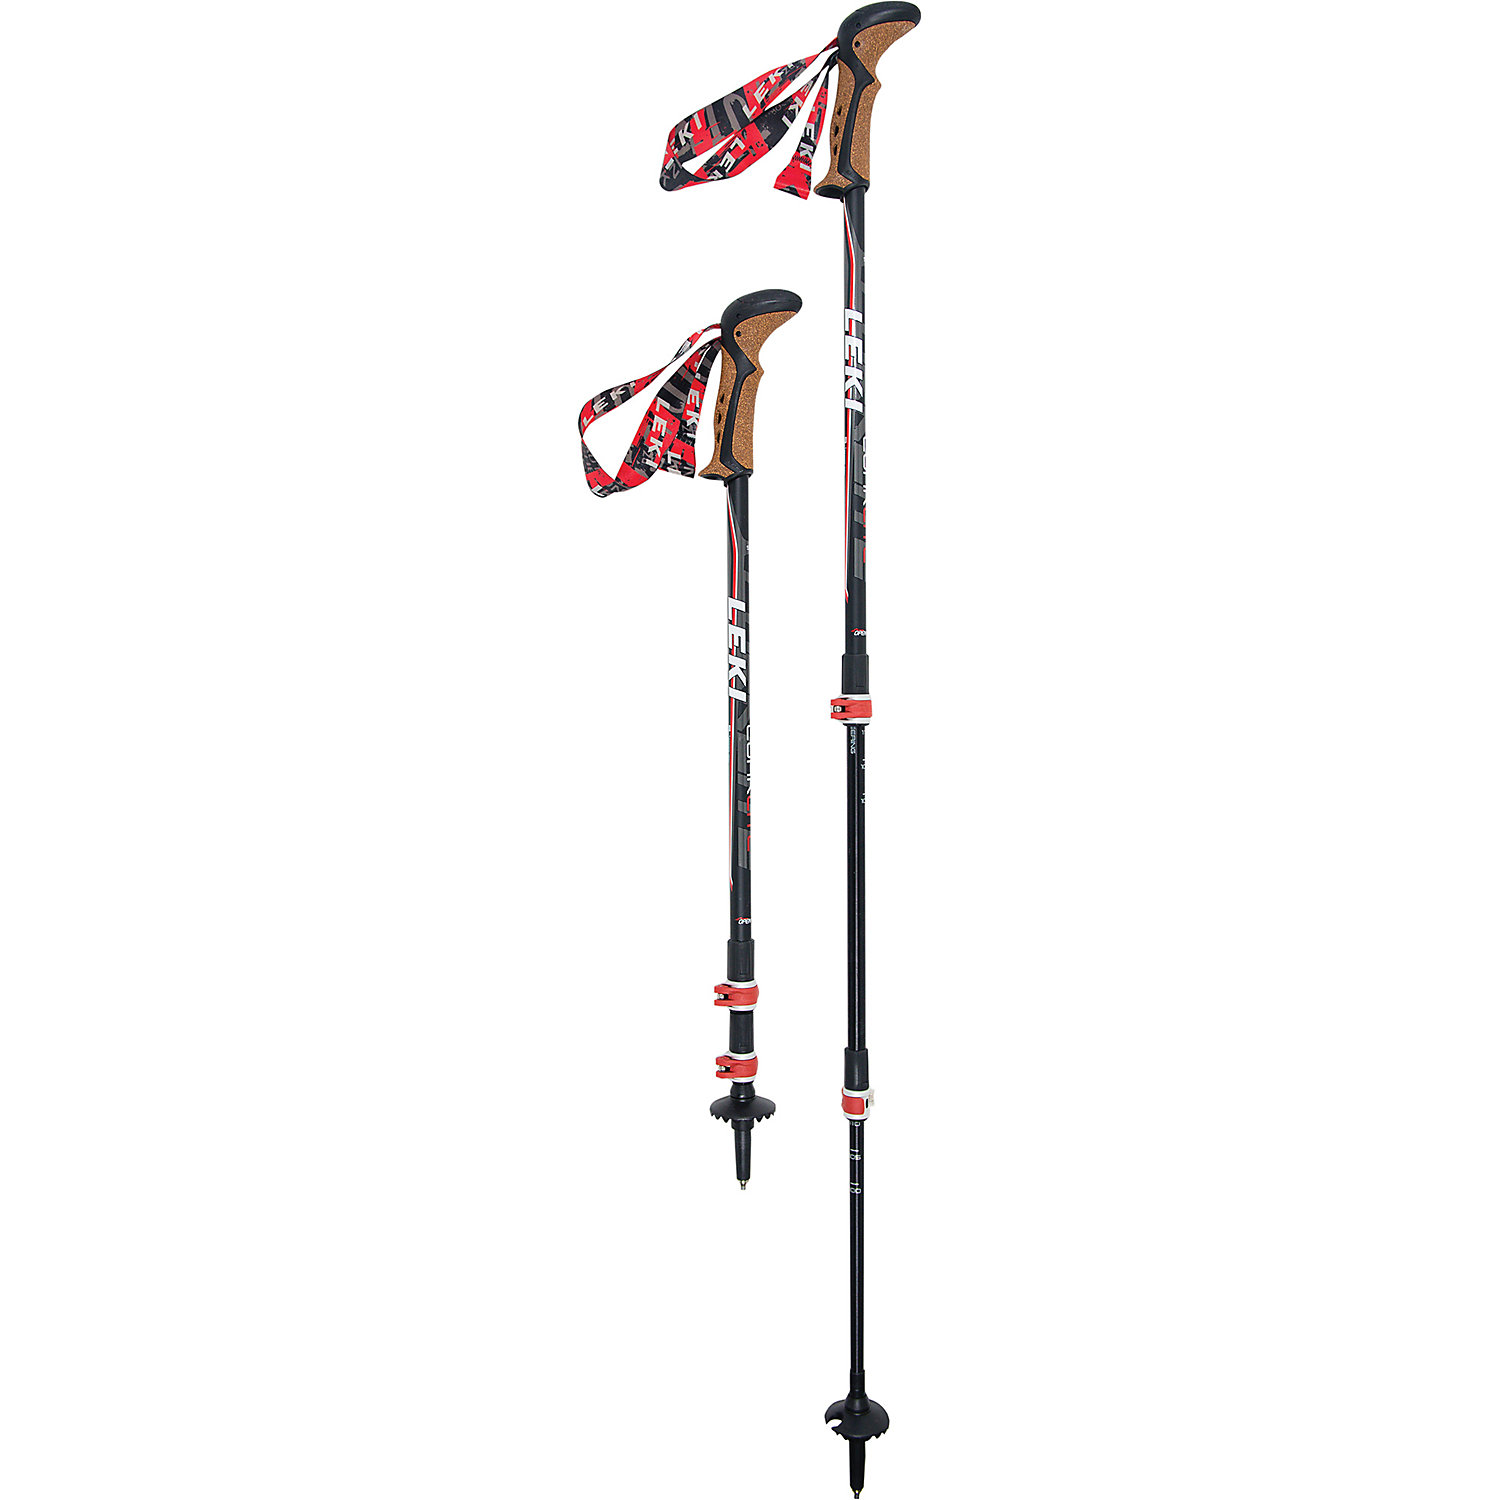 5c036b8b1cb Leki Corklite Speedlock Trekking Poles. Double tap to zoom. Black   Red    White